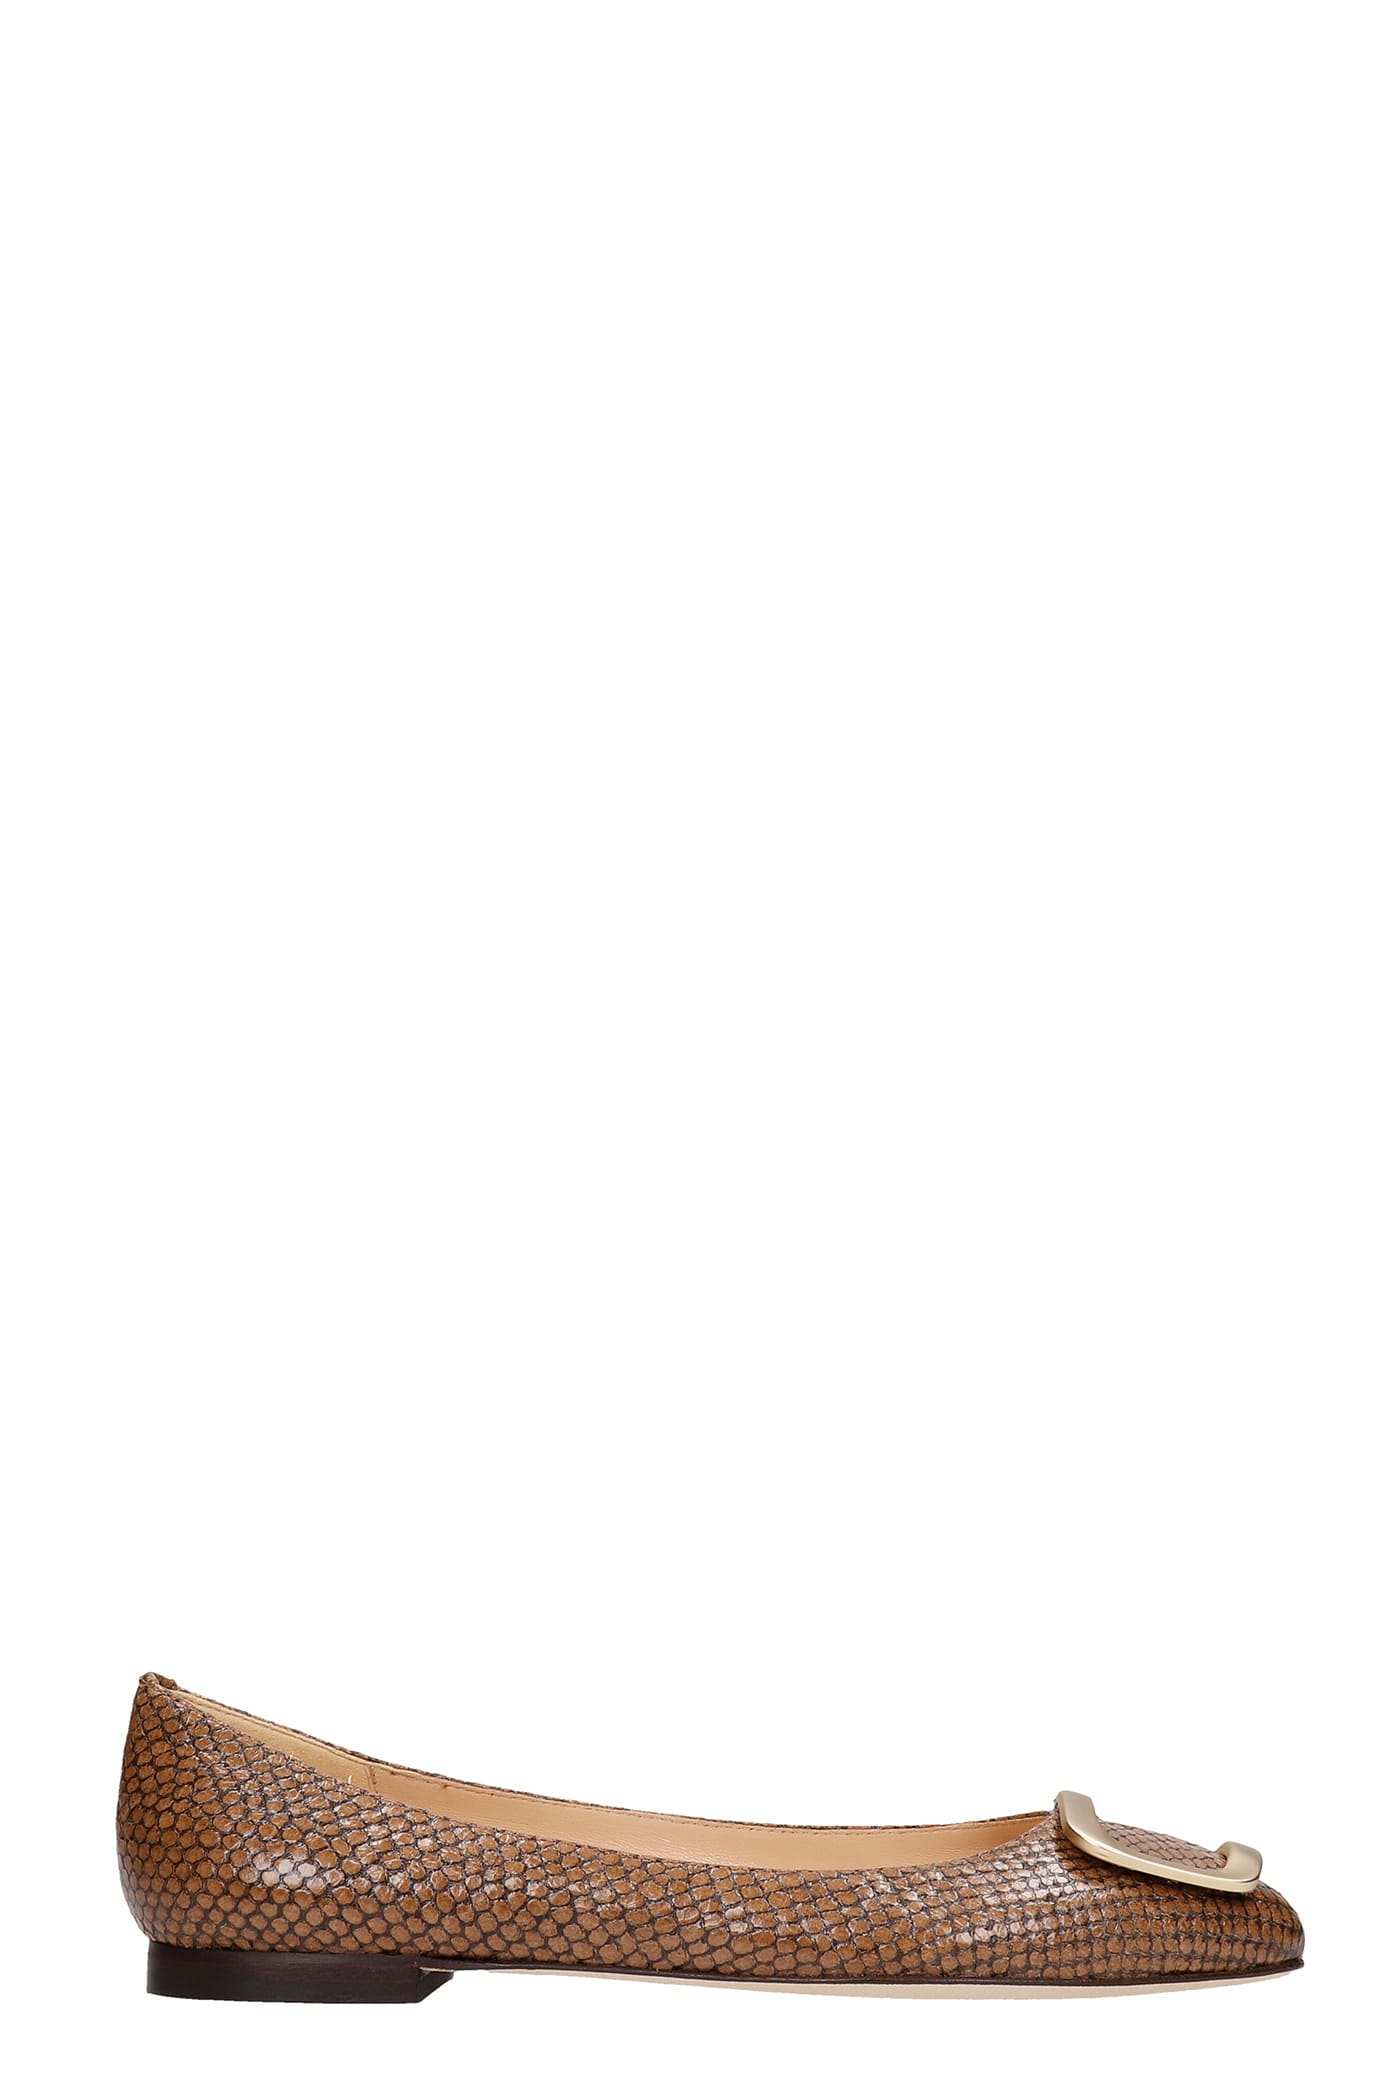 Ballet Flats In Brown Leather